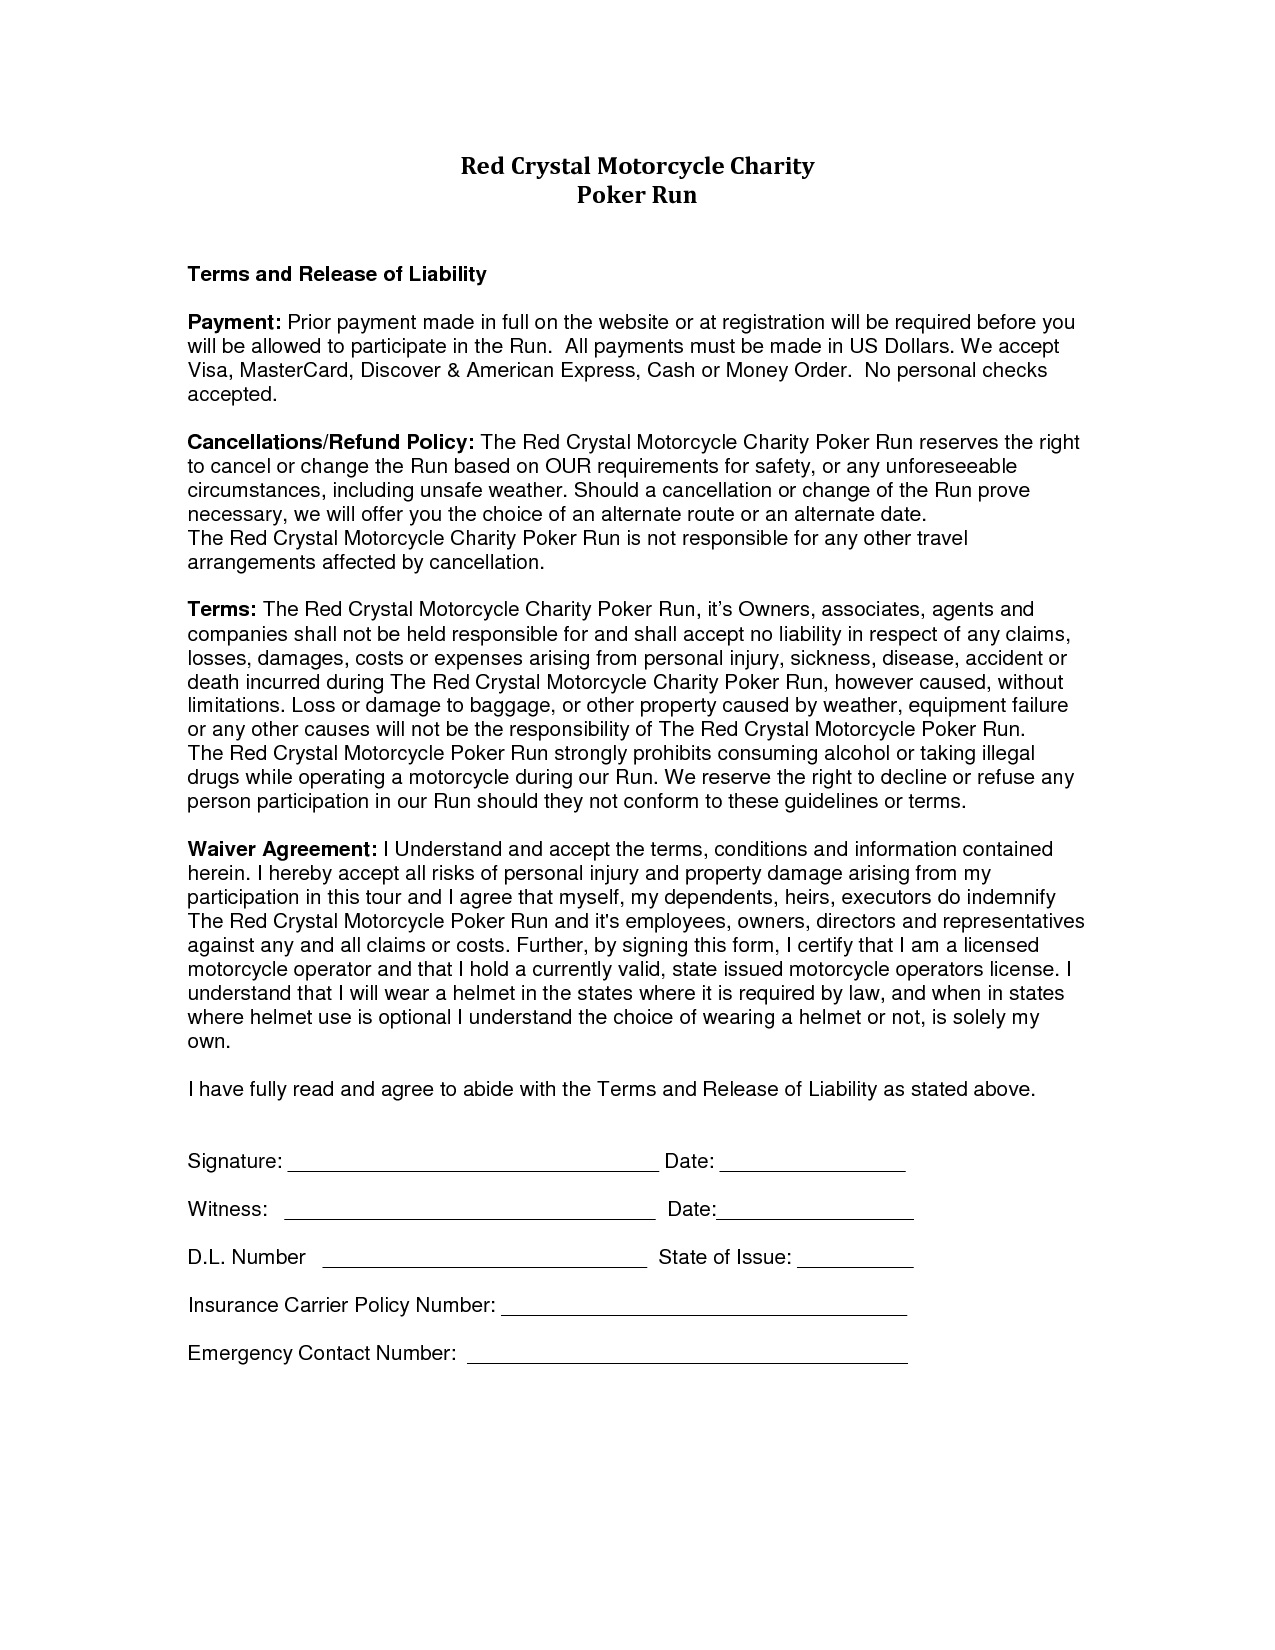 Liability Release Template poster word template – Release of Liability Form Sample